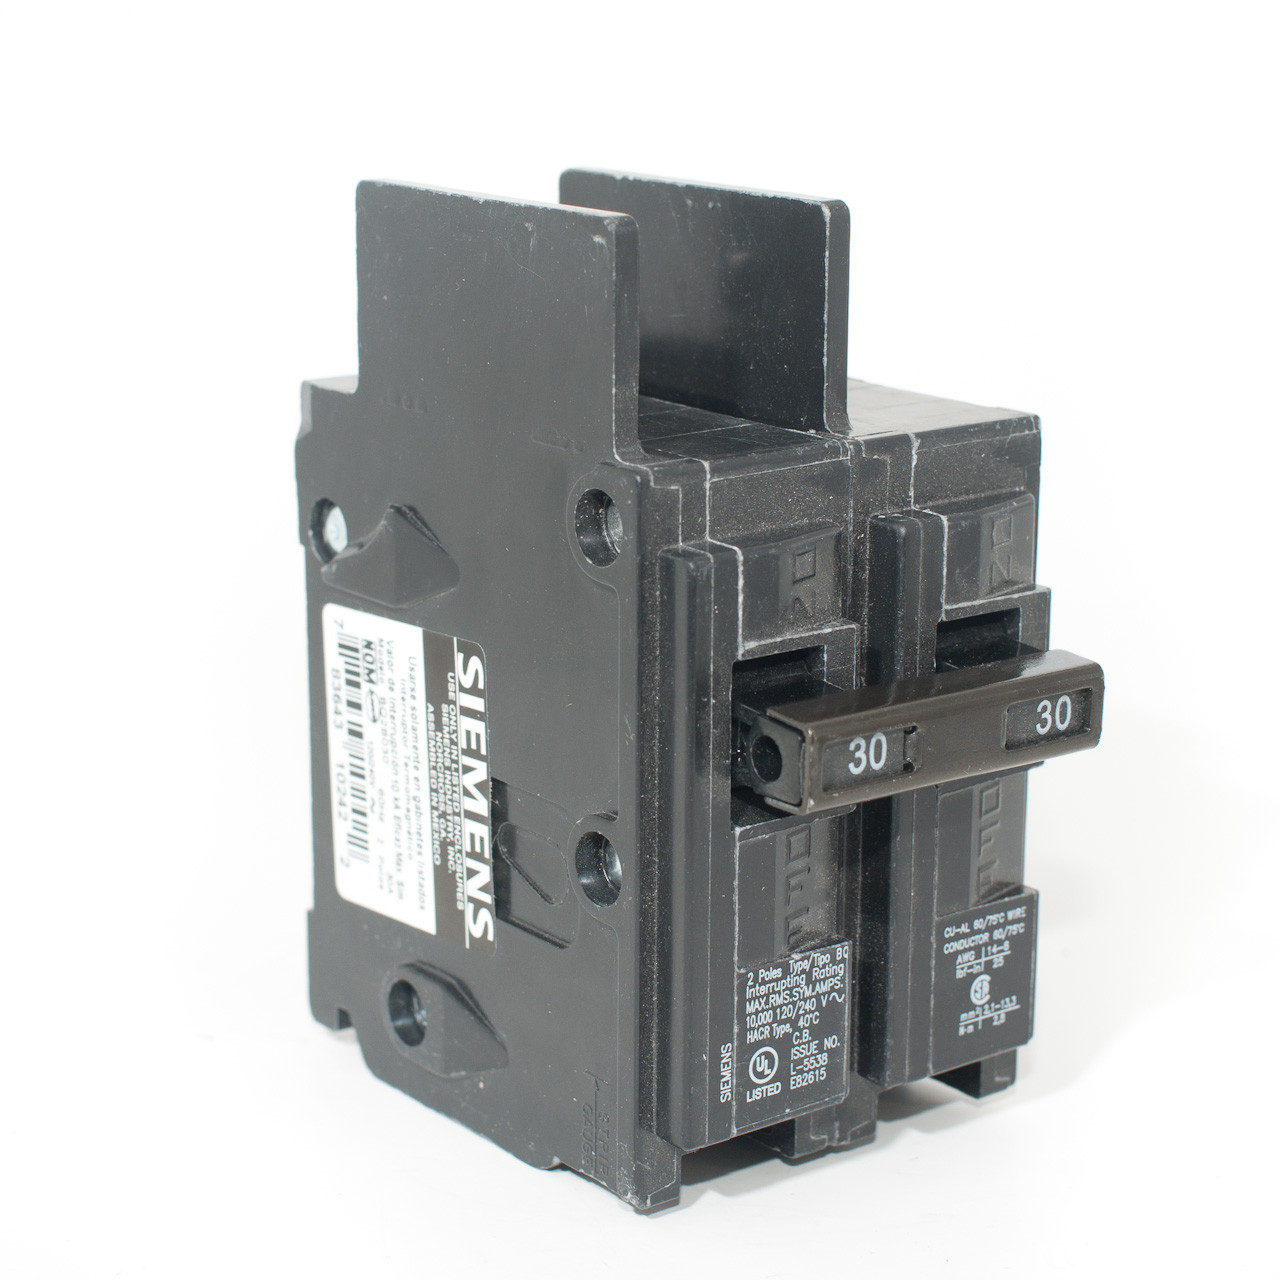 Siemens BQ2B030 Two Pole 30A 'BQ' Bolt-On Breaker